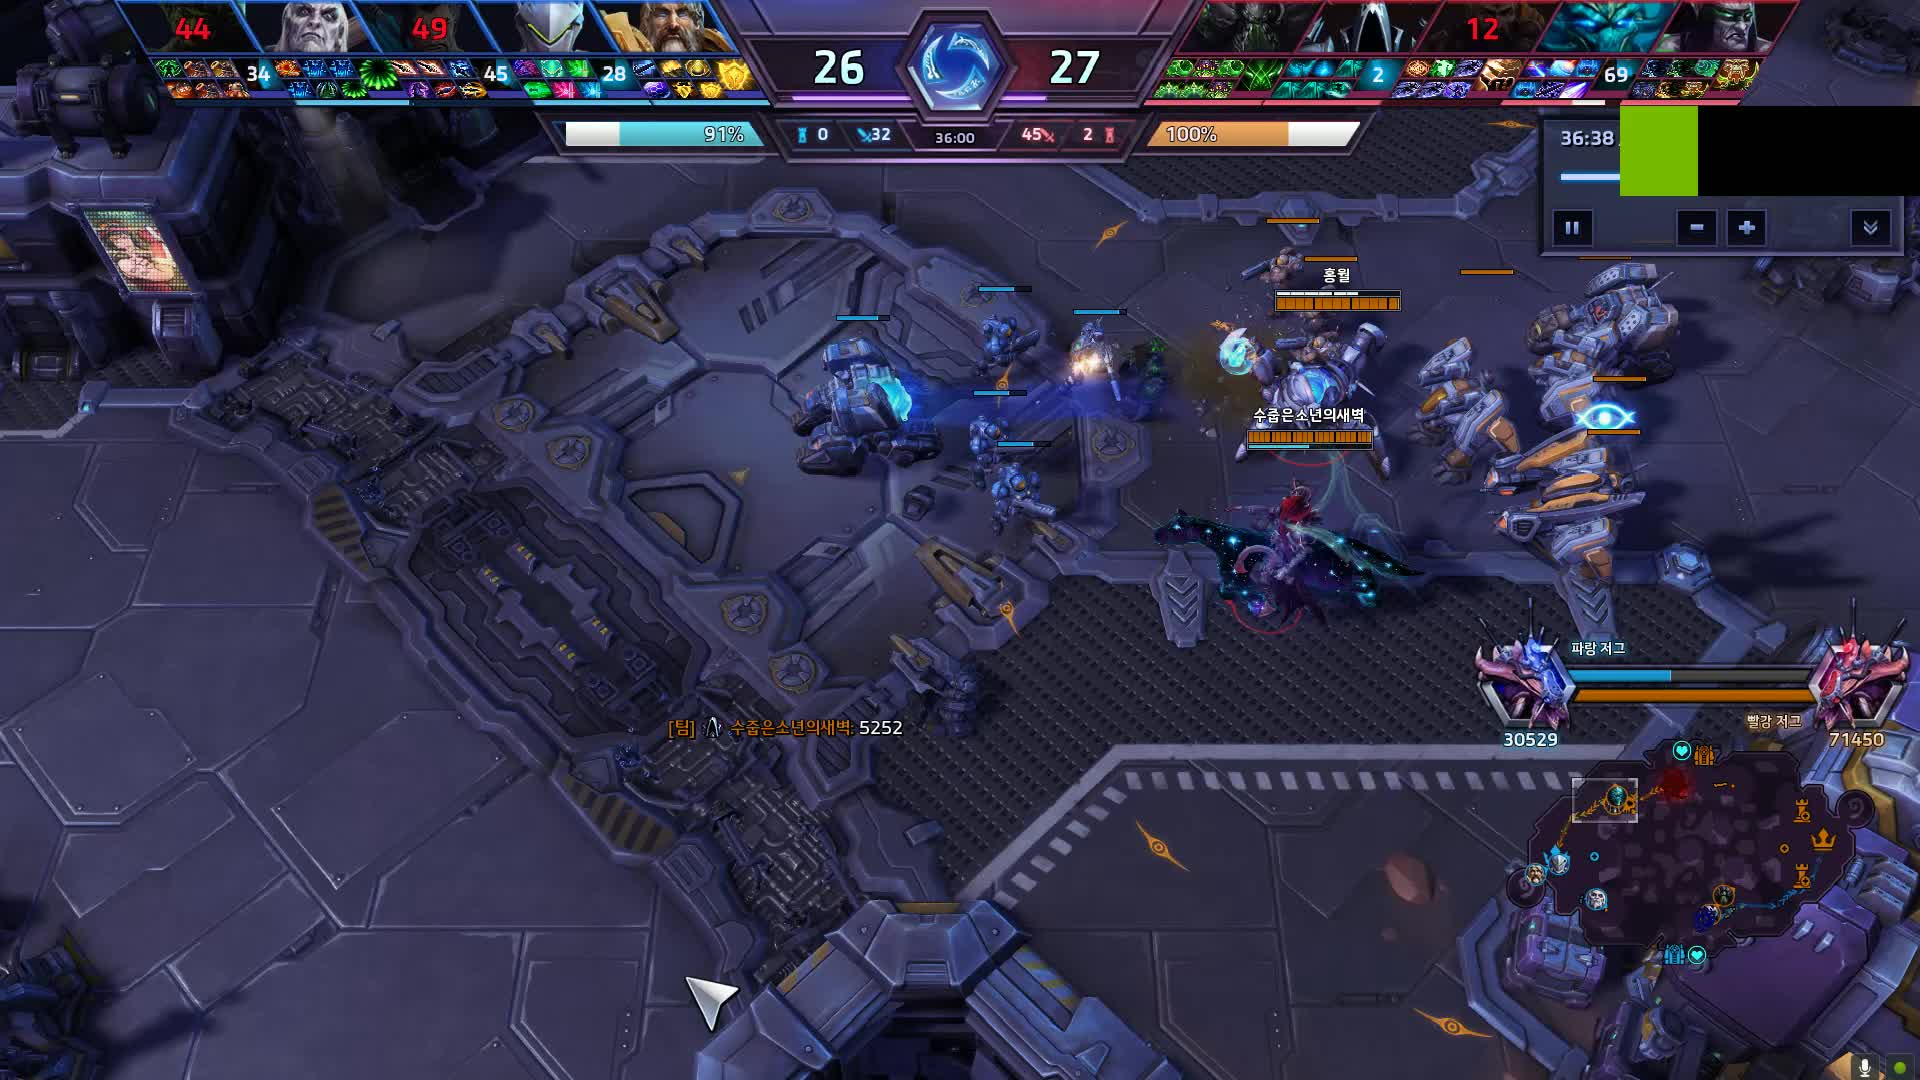 heroesofthestorm, Heroes of the Storm 2019.03.09 - 04.24.15.03 GIFs